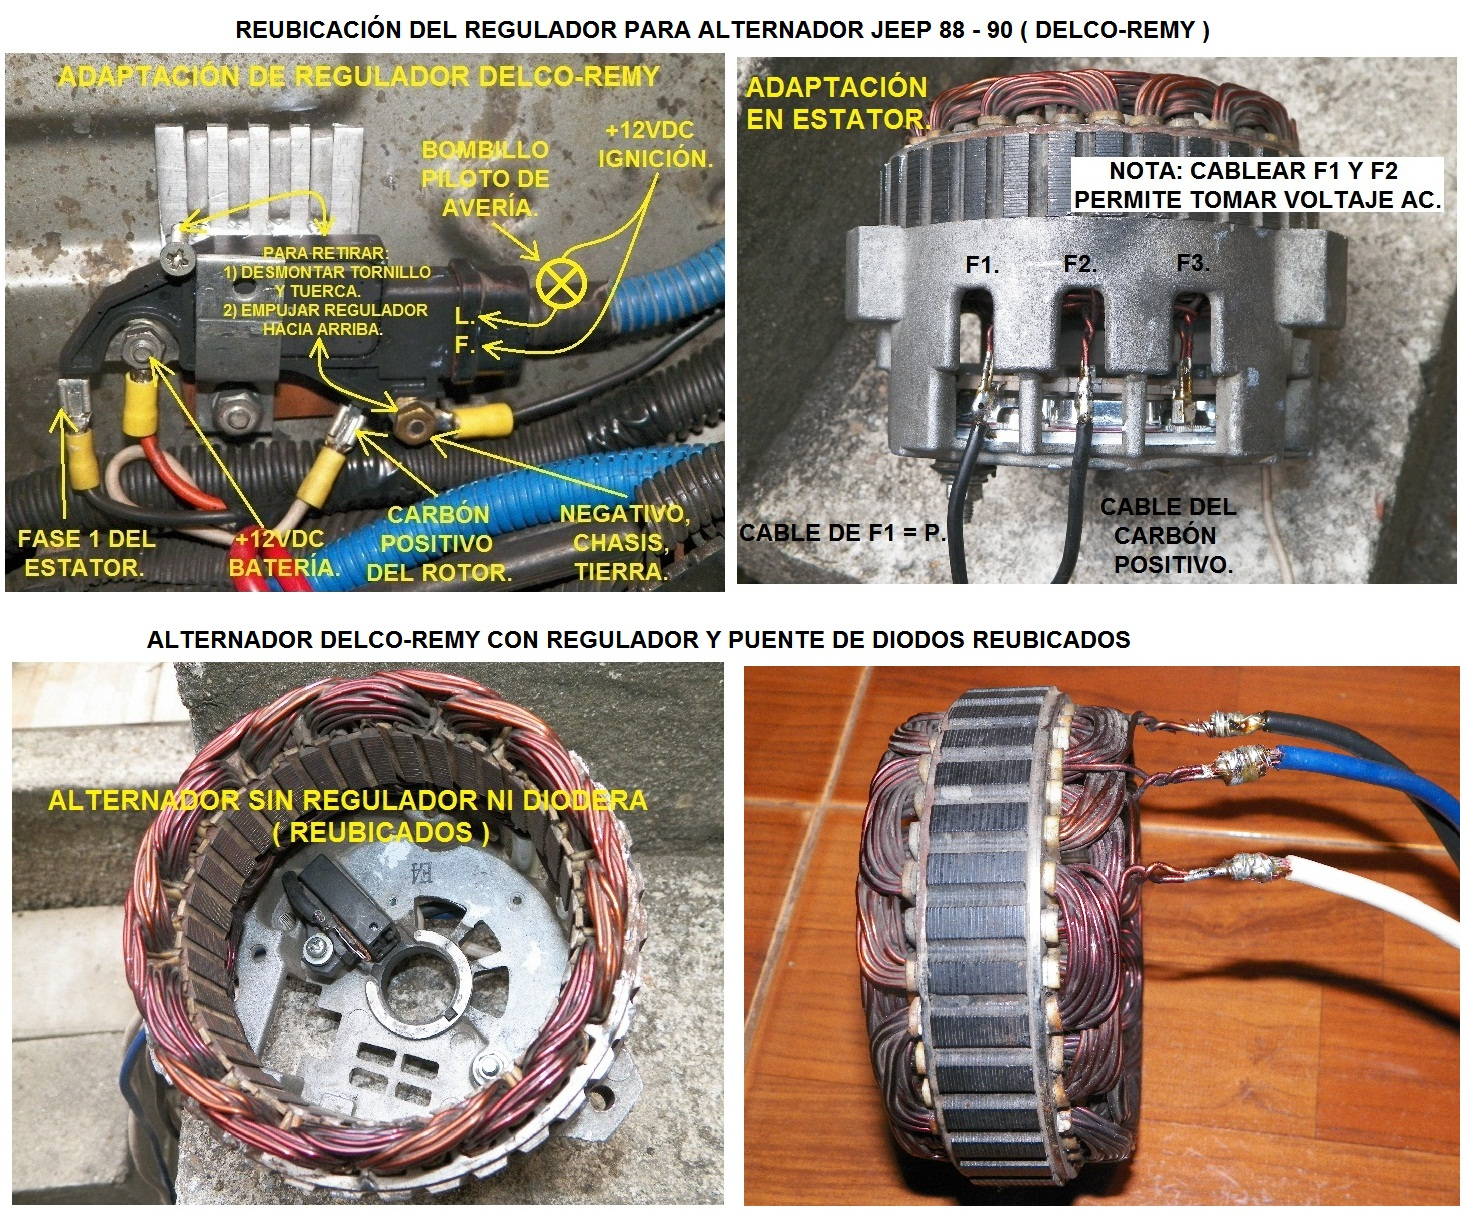 Adaptar_Alternador_Jeep_88_90